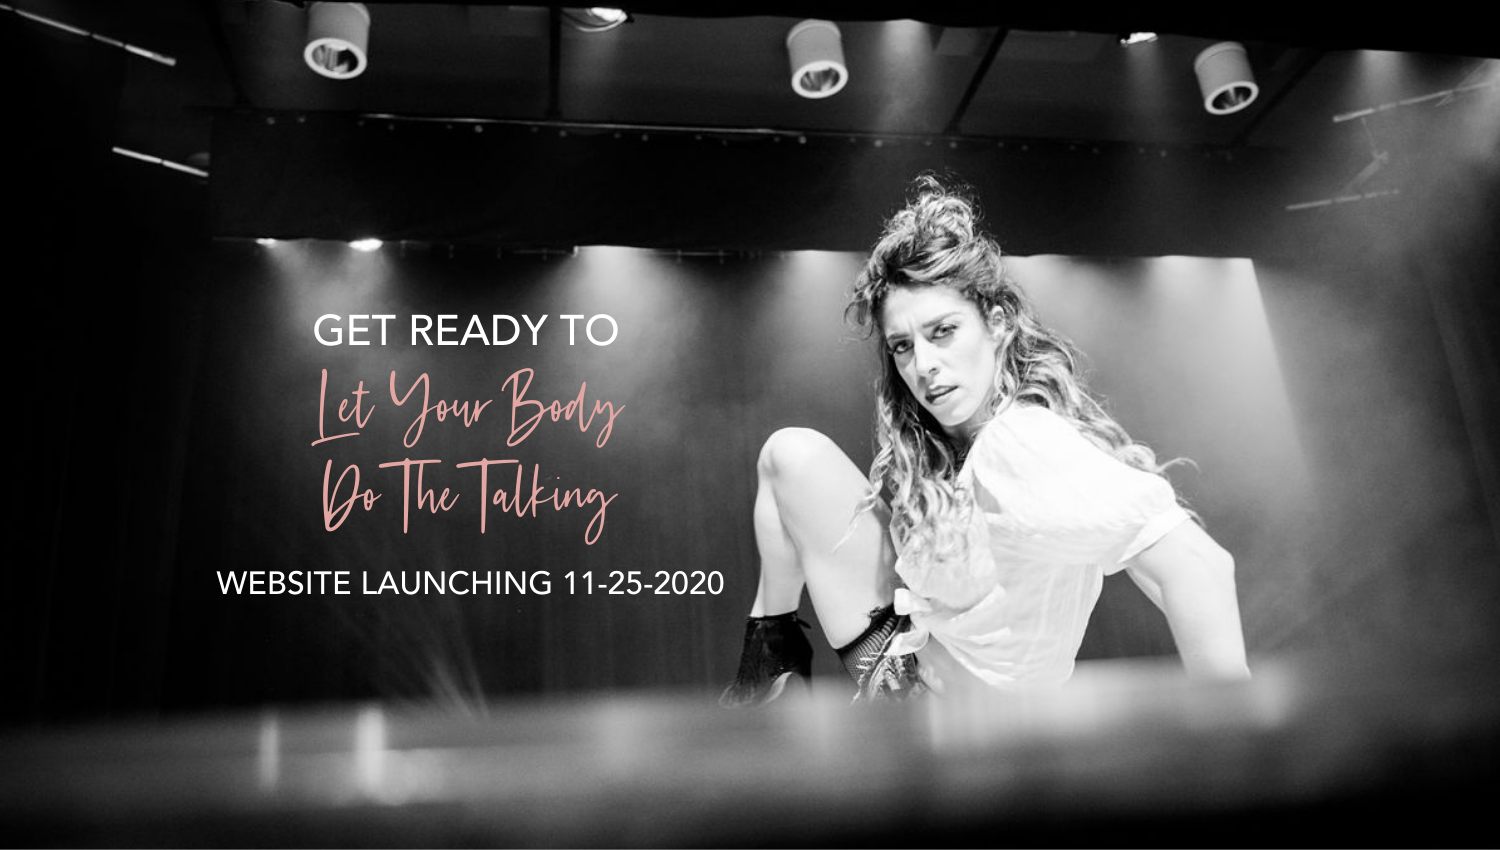 Brittany-Brie Movement - New Website Coming Soon